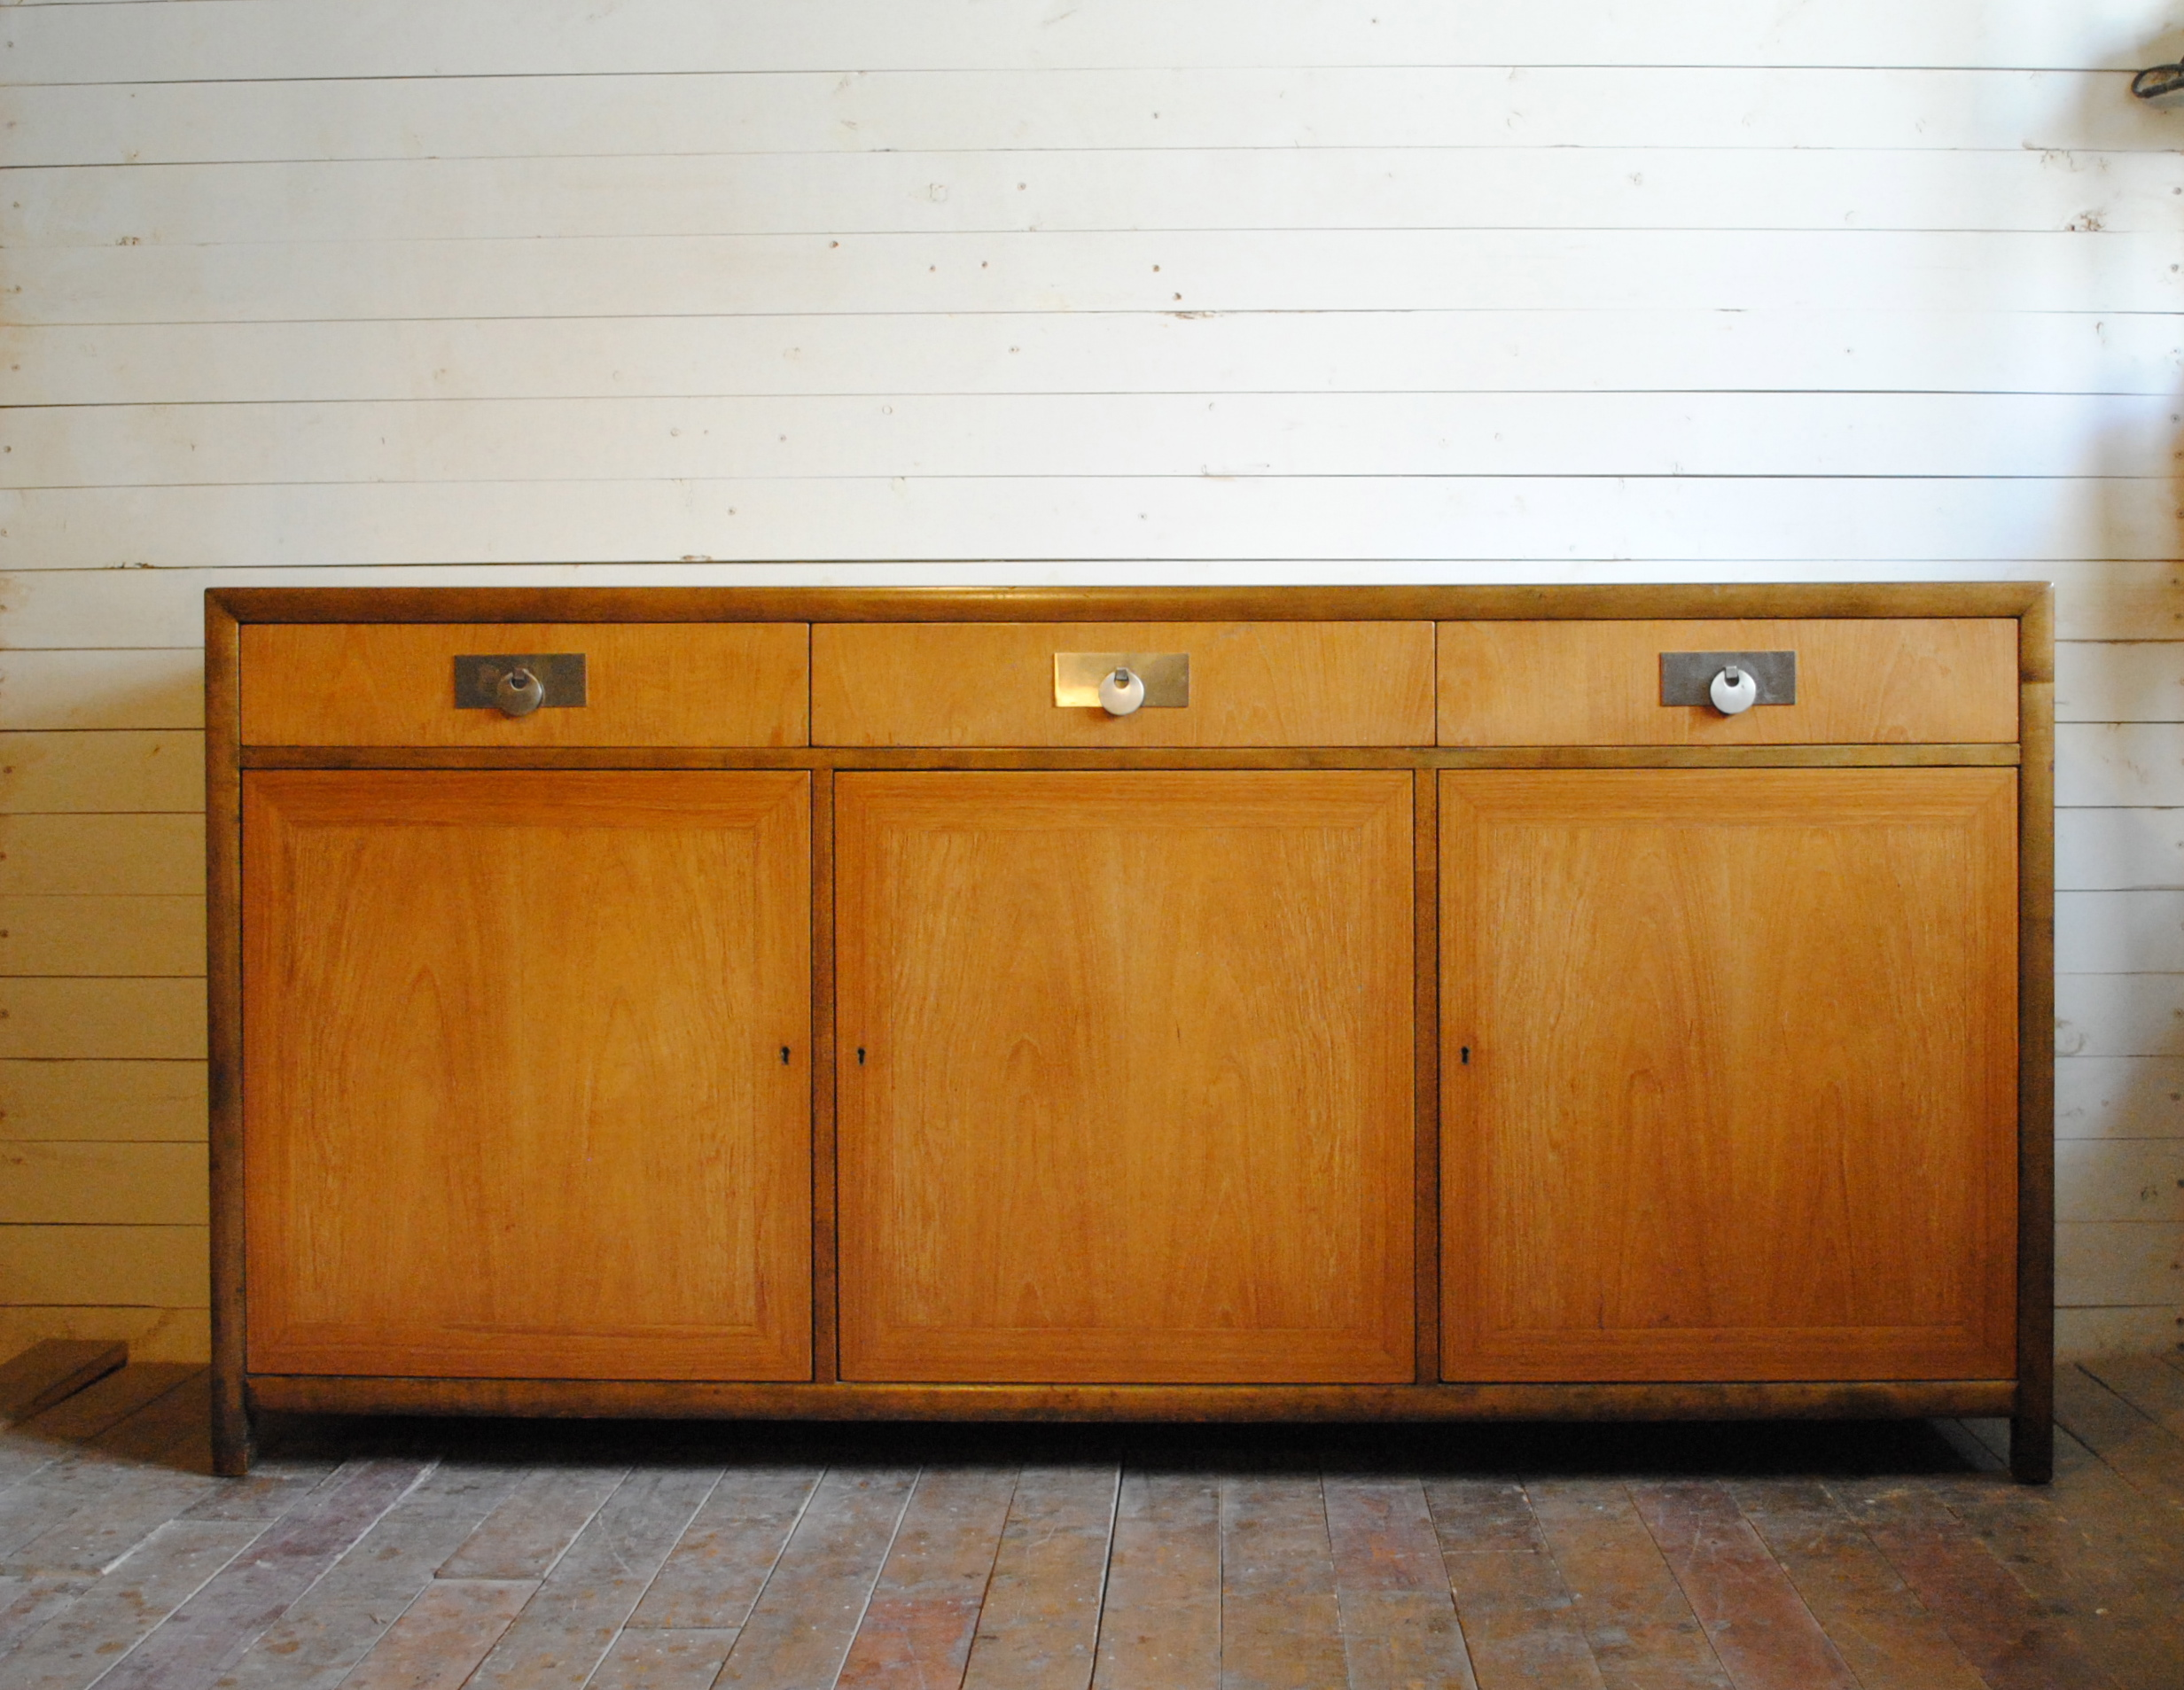 Gorgeous Mid Century Credenza Designed By Michael Taylor For Baker. Back Is  Also Finished. Dimensions Are 66u2033W X 19u2033D X 32u2033H. Please Contact Me With  Any ...